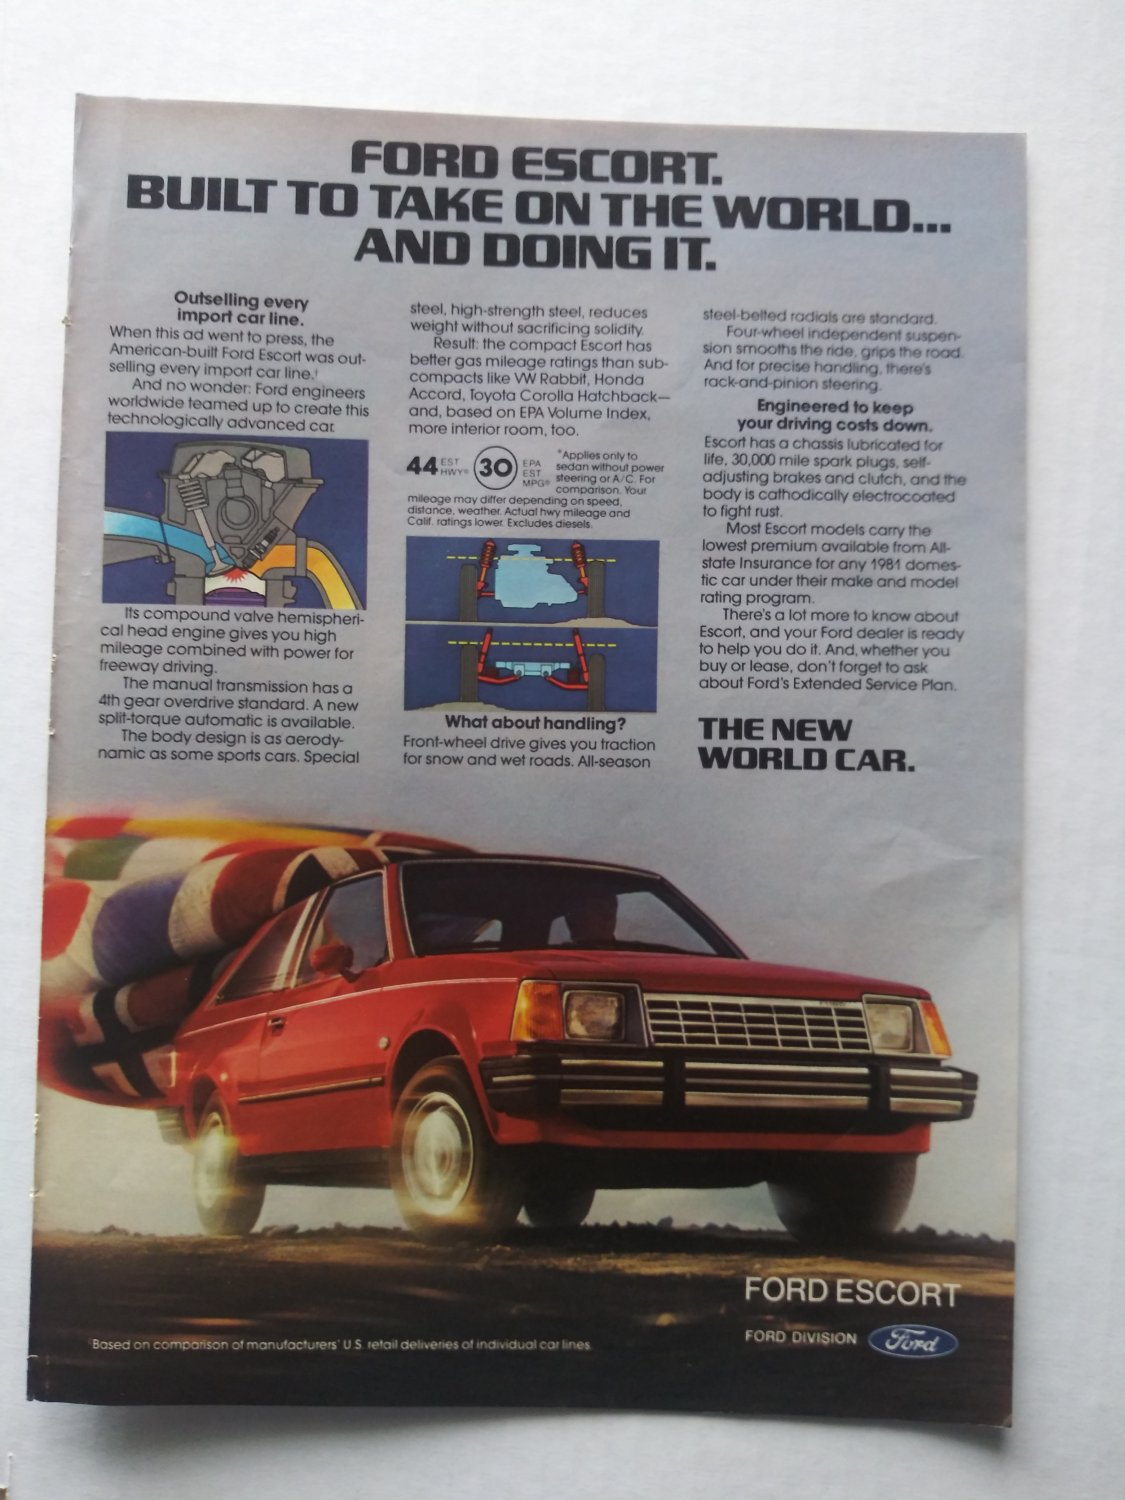 Magazine Print Ad From 1981 For FORD ESCORT: BUILT TO TAKE ON THE WORLD AND DOING IT.